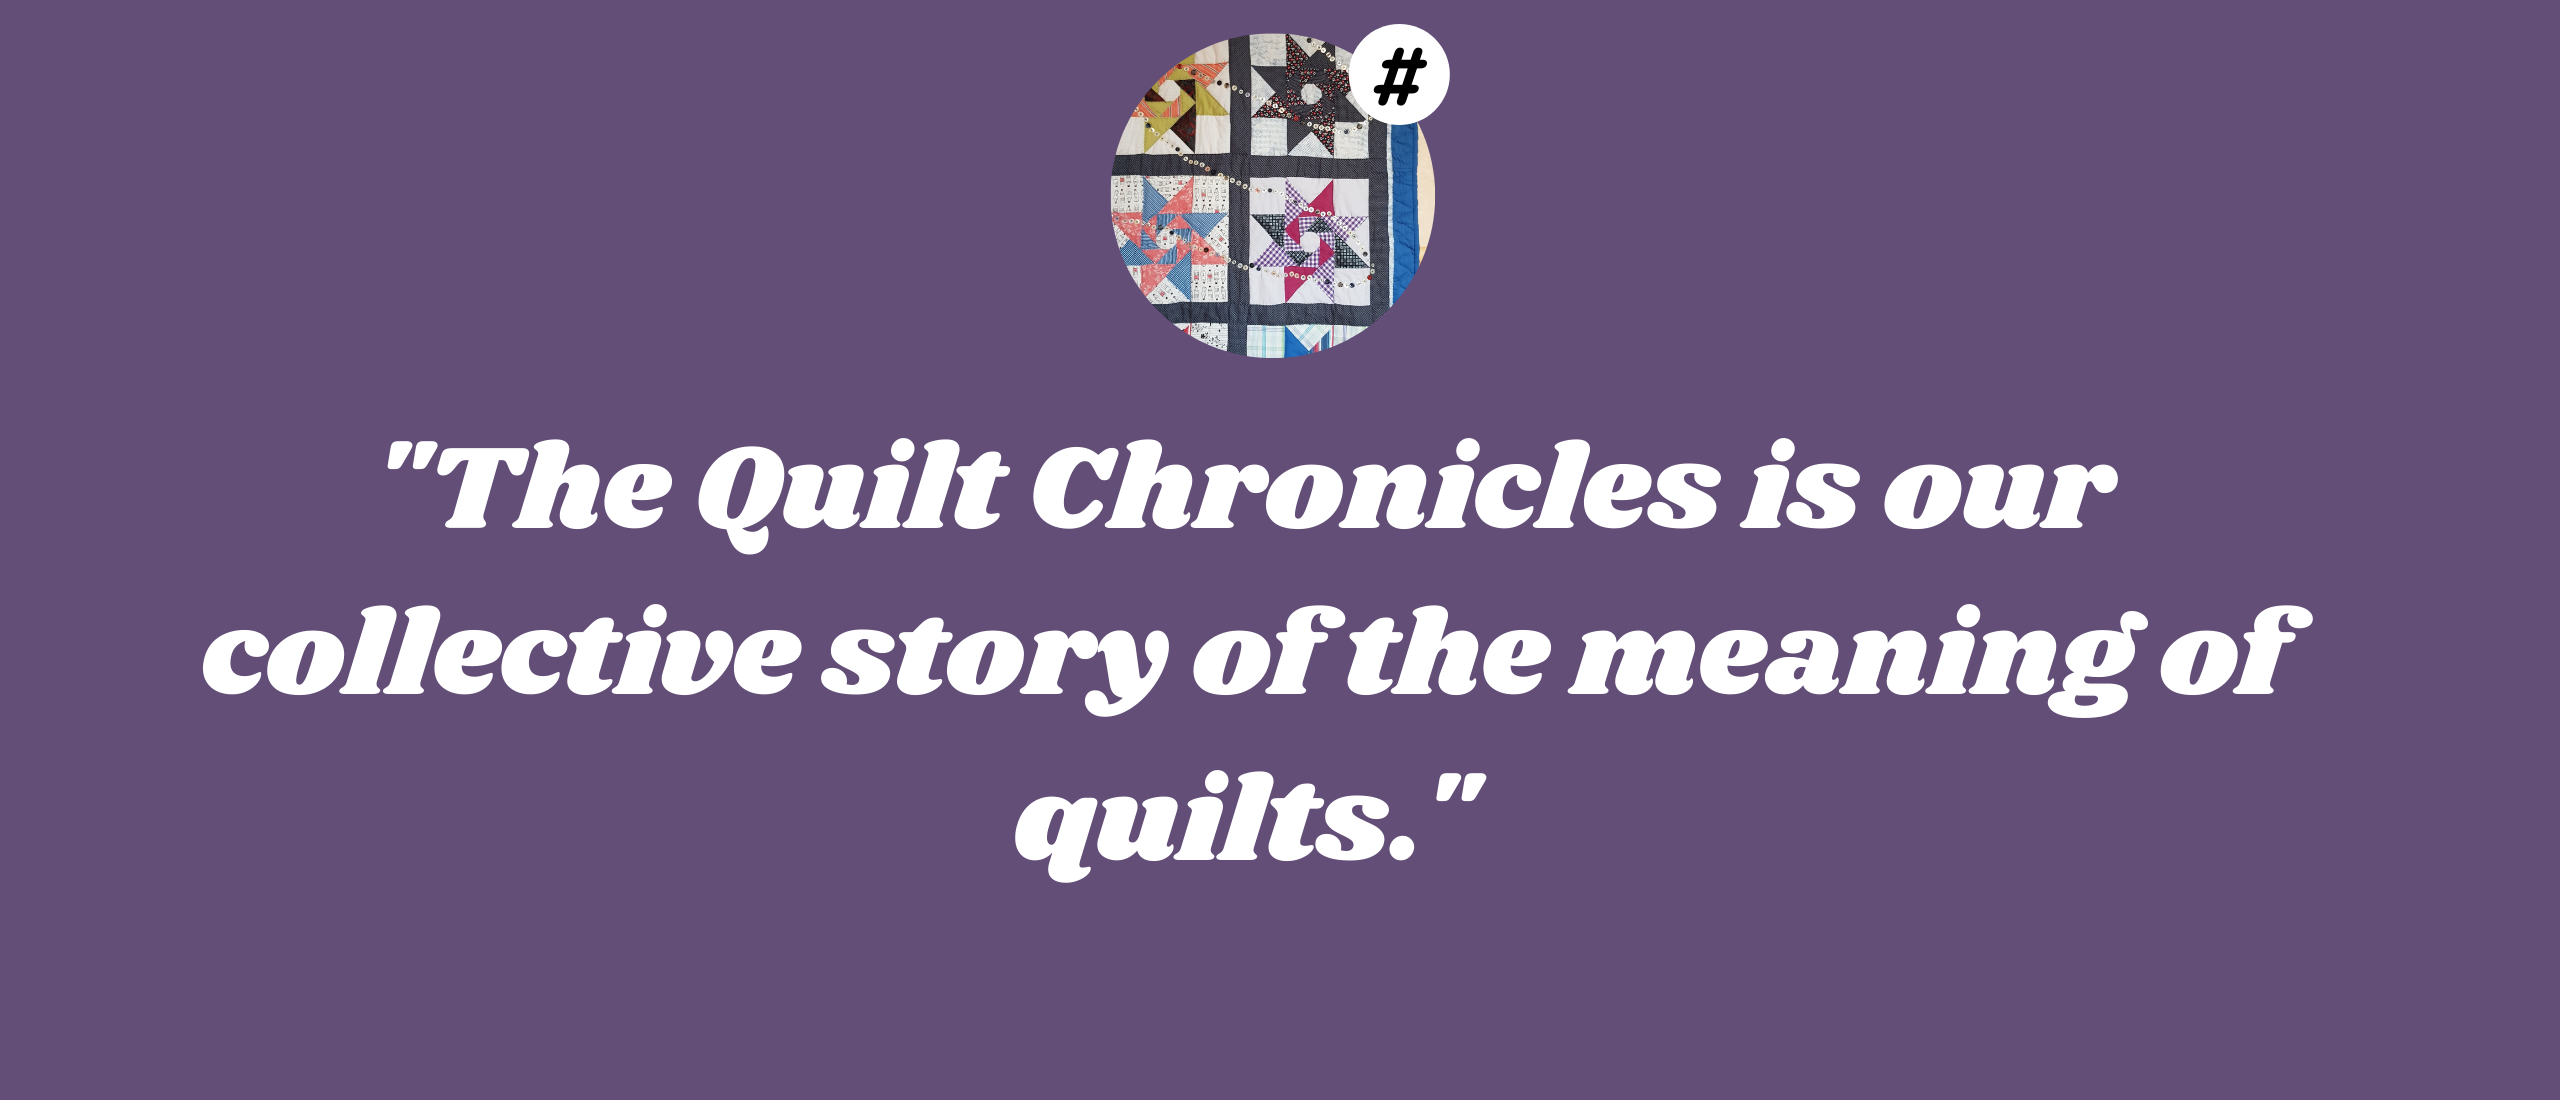 Quilt Chronicles: the meaning of quilts